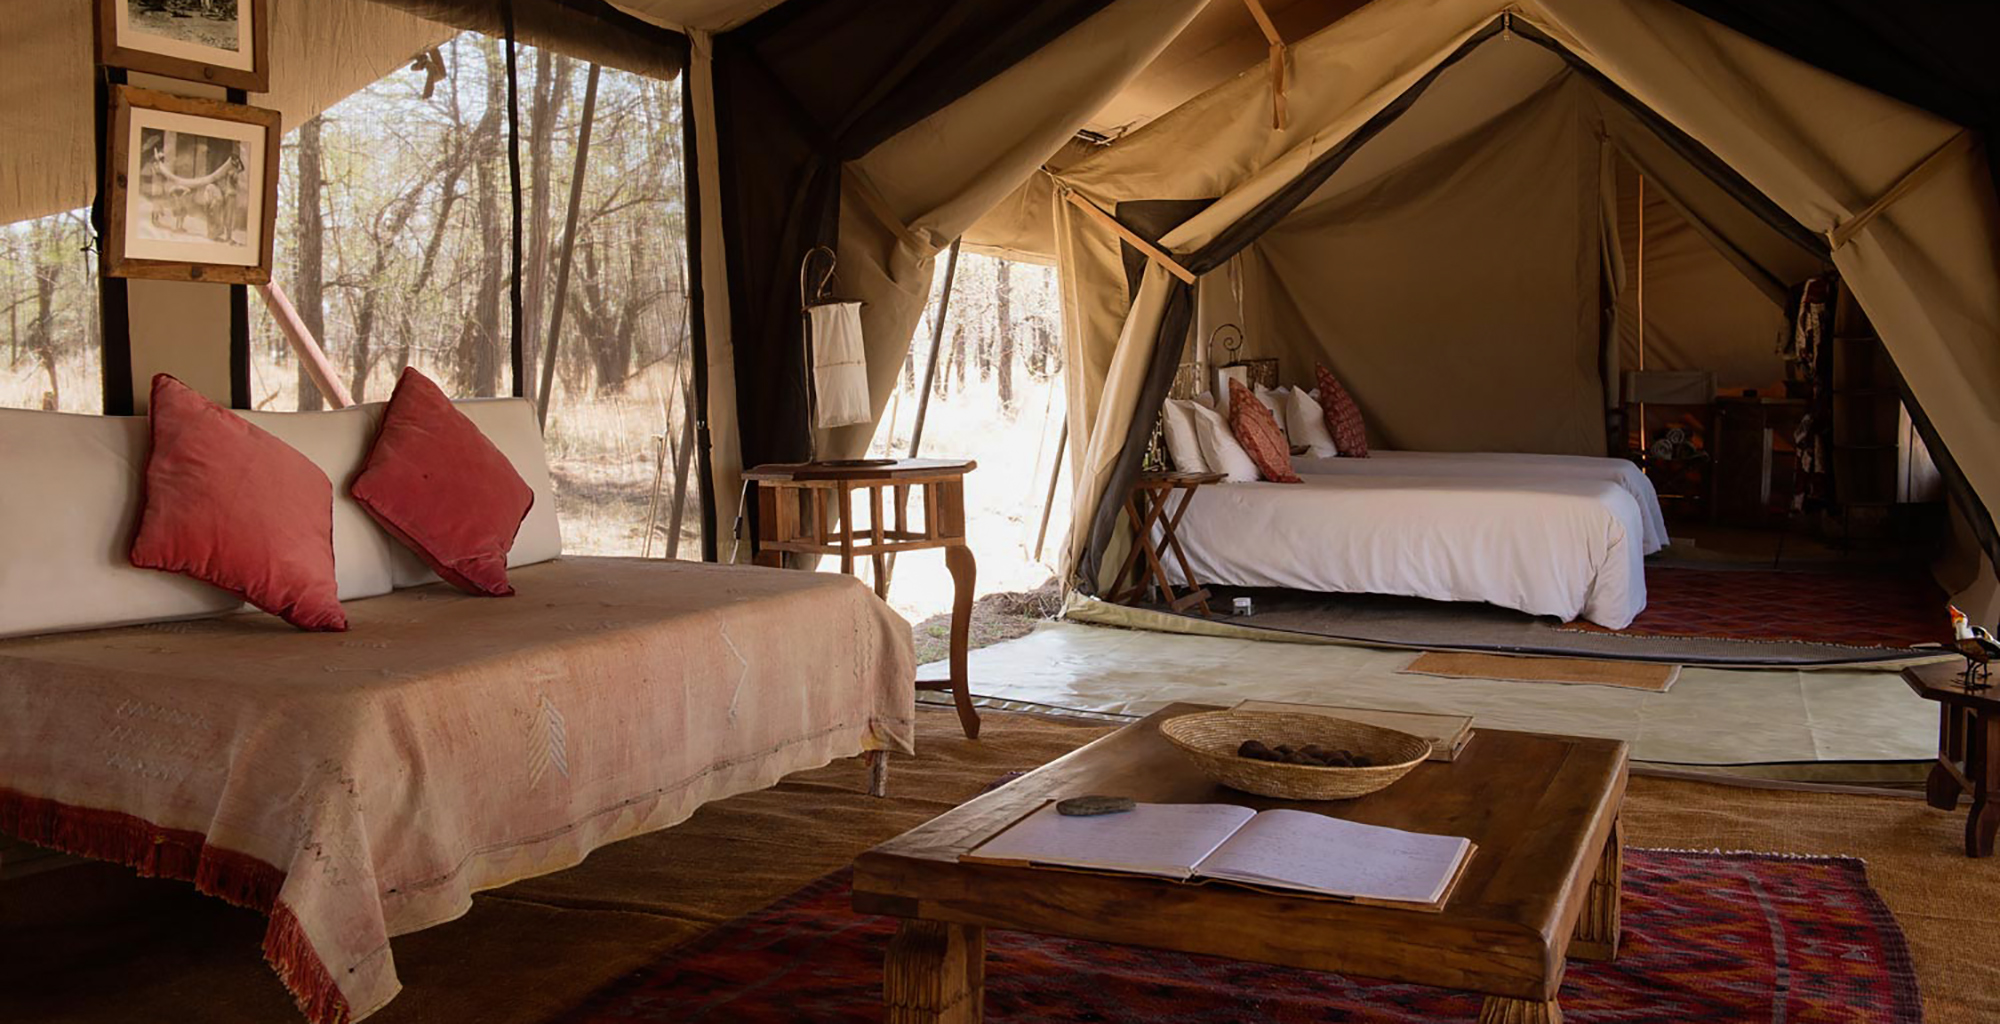 Tanzania-Serians-Serengeti-Mobile-Camp-Bed-from-Living-Room